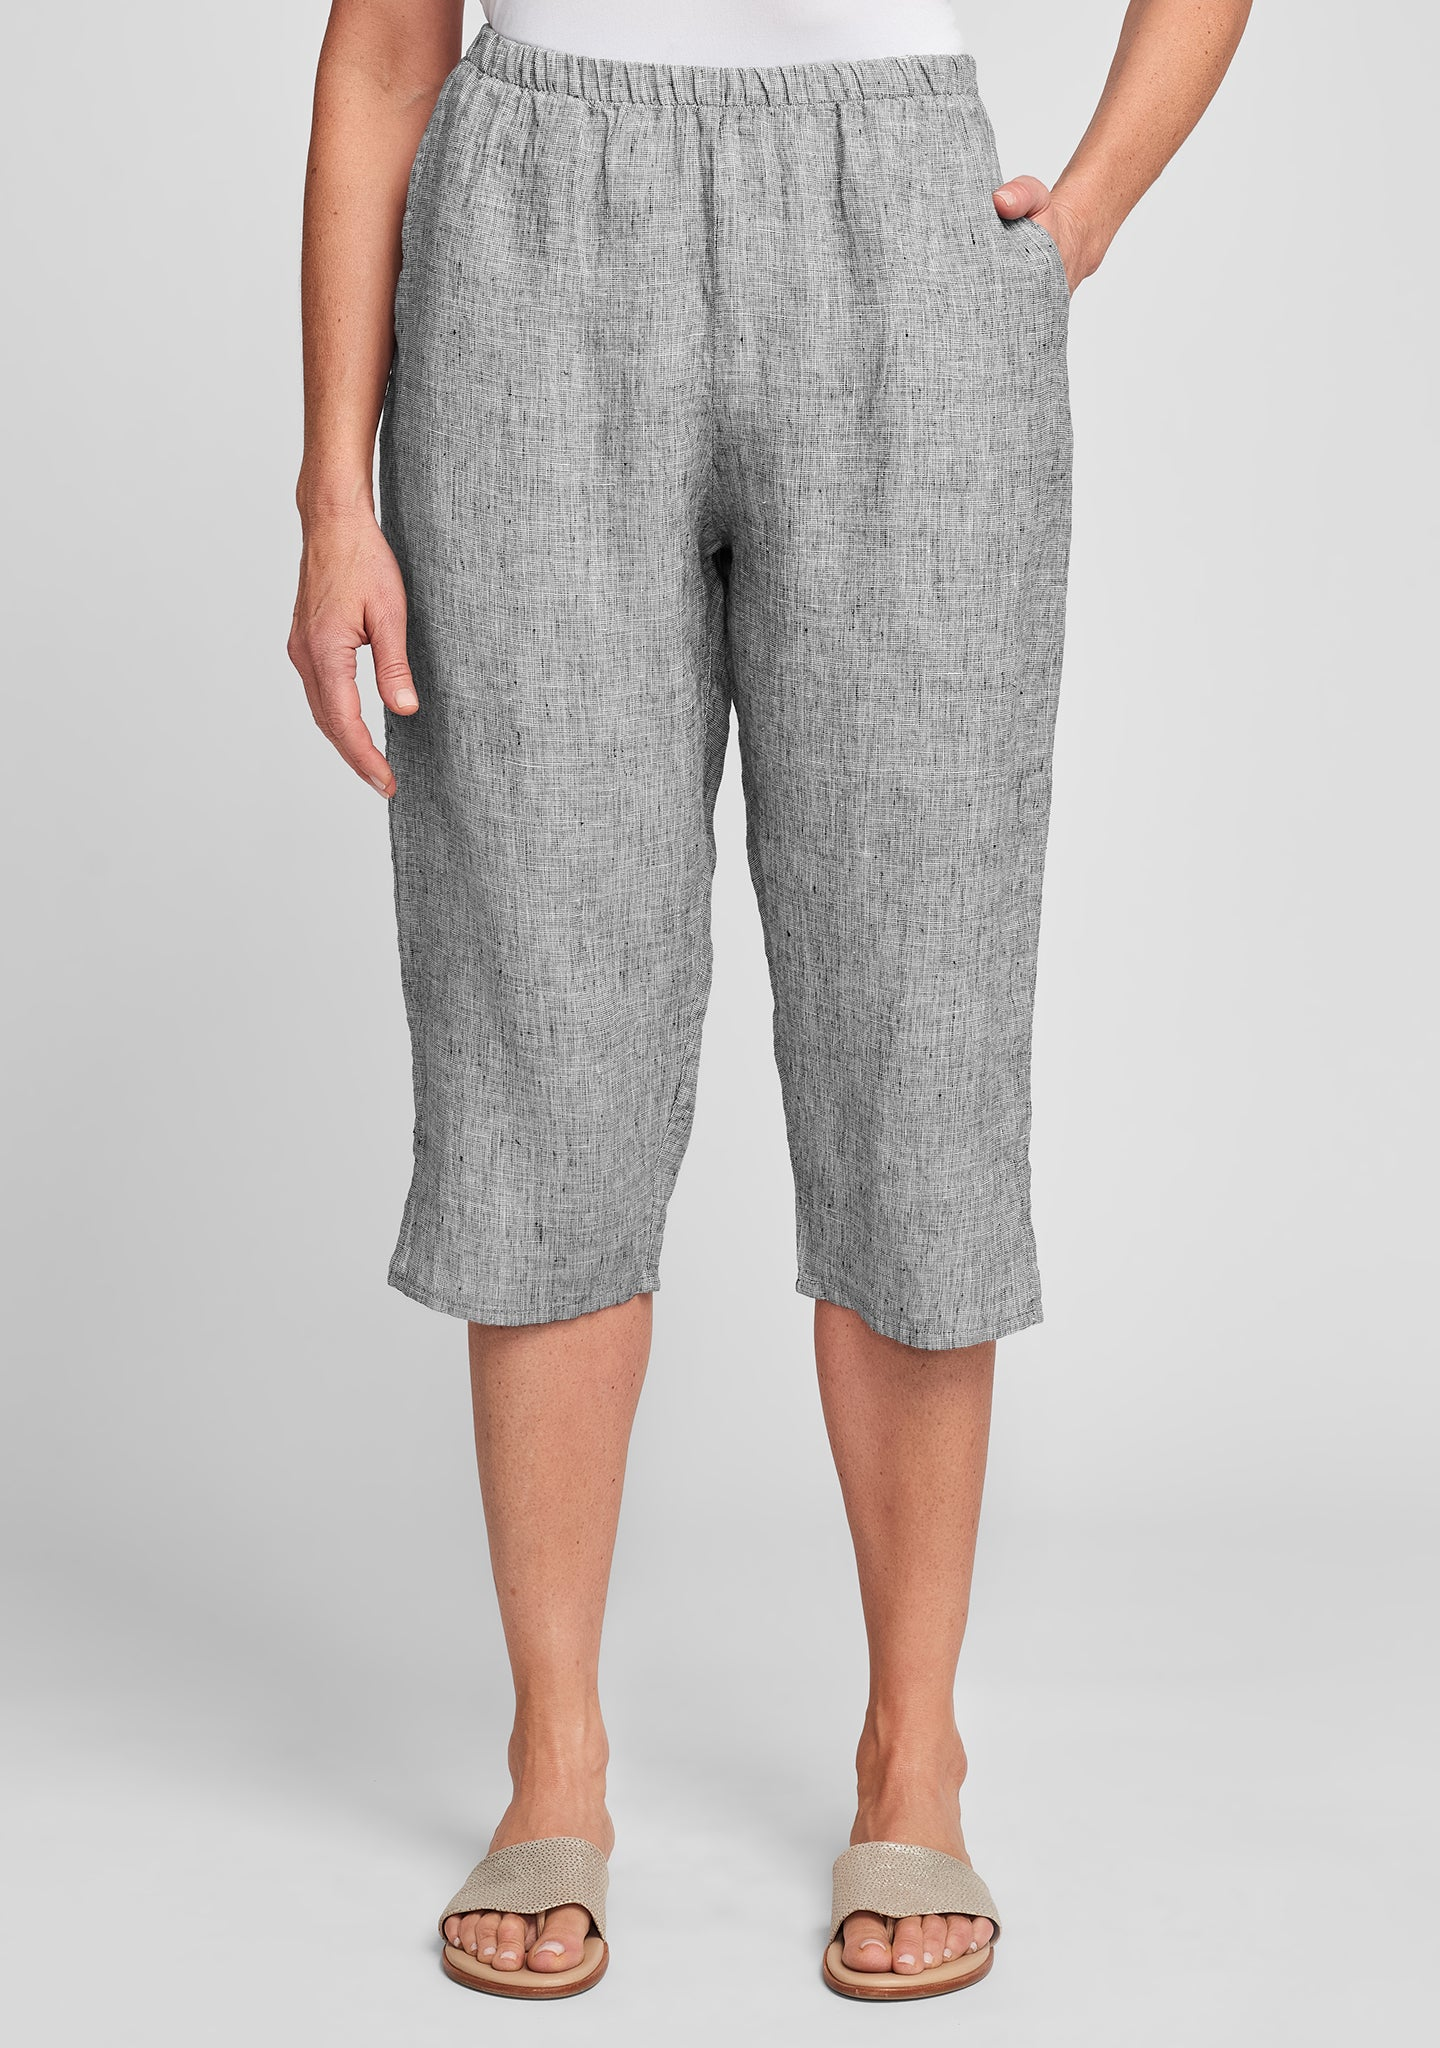 pedal pant linen crop pants grey